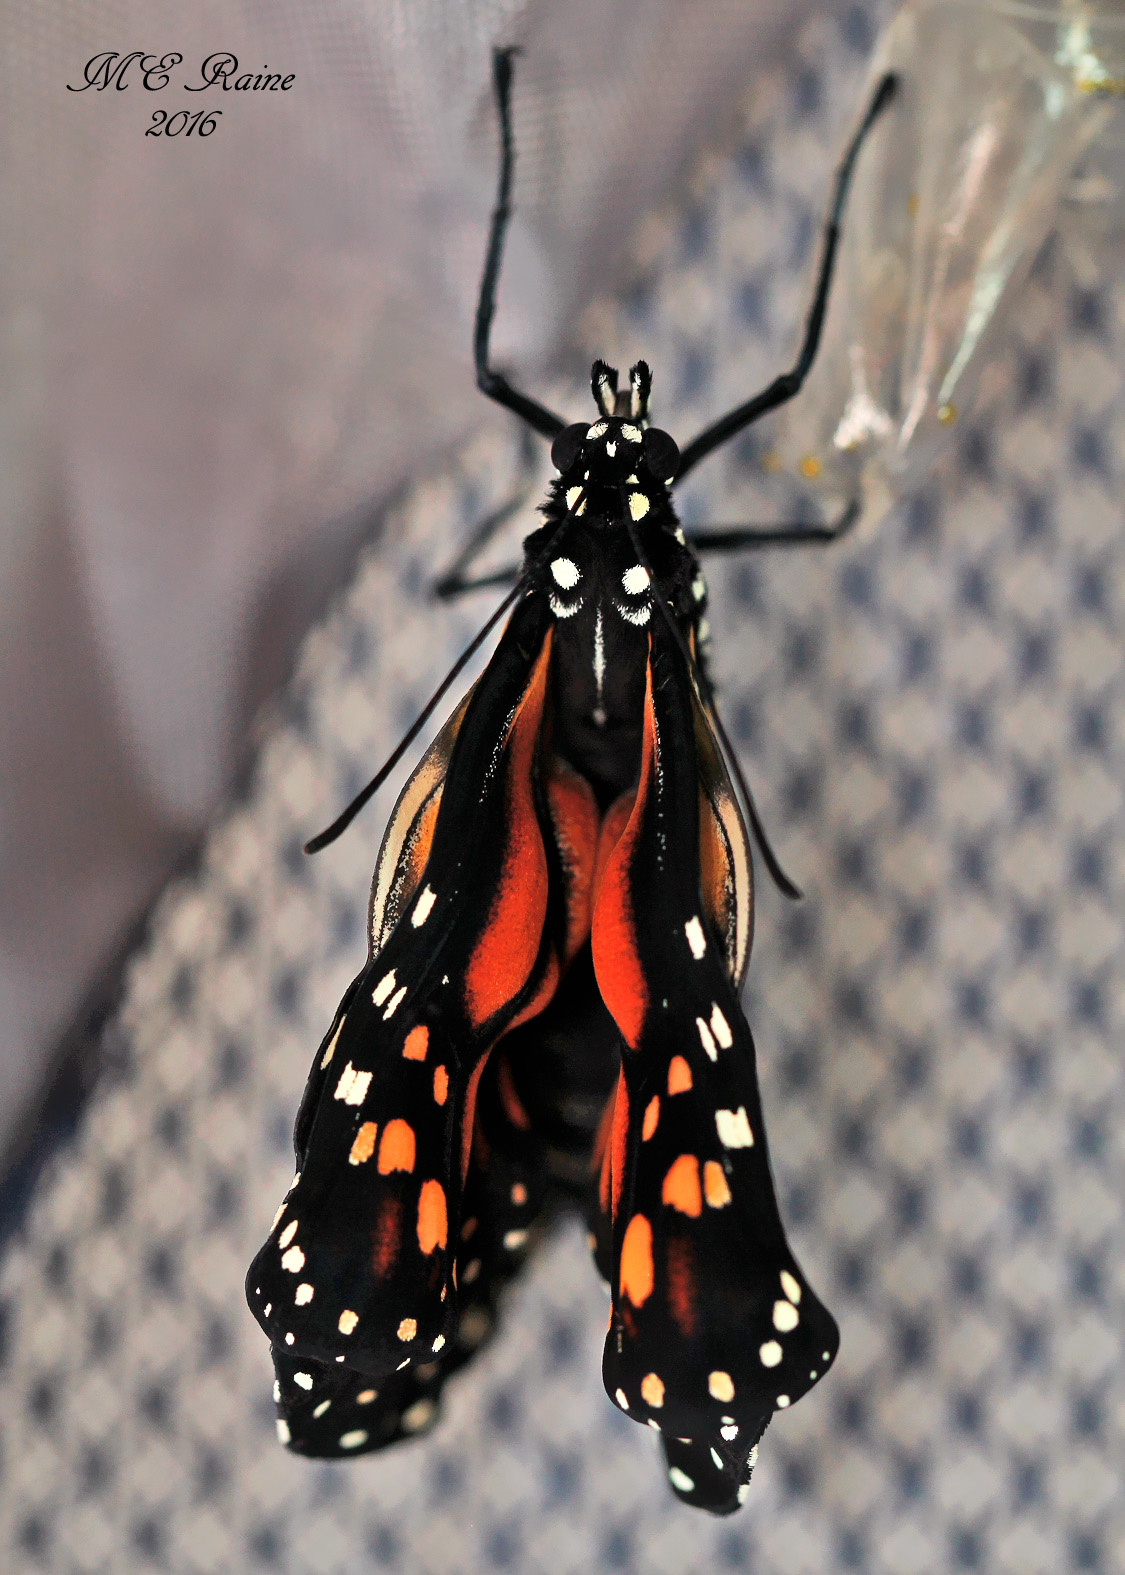 final-post-monarch-butterfly-emergence-of-no-6-w-fluids-pumping-into-wings-091816-7am-ok-wm